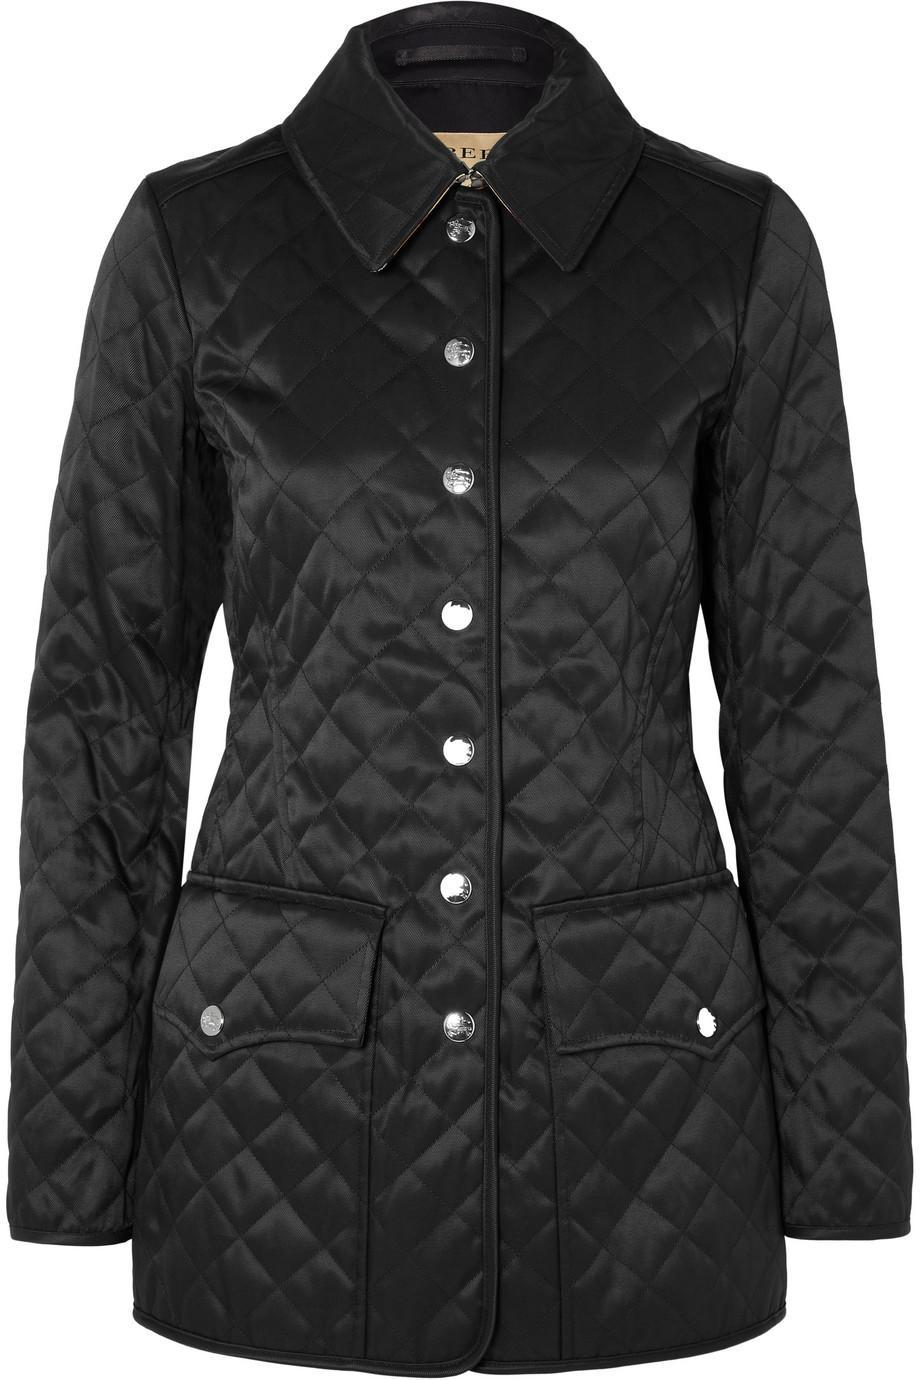 """<br><br><strong>Burberry</strong> Quilted Shell Jacket, $, available at <a href=""""https://www.net-a-porter.com/gb/en/product/1096081/Burberry/quilted-shell-jacket-s"""" rel=""""nofollow noopener"""" target=""""_blank"""" data-ylk=""""slk:Net-A-Porter"""" class=""""link rapid-noclick-resp"""">Net-A-Porter</a>"""